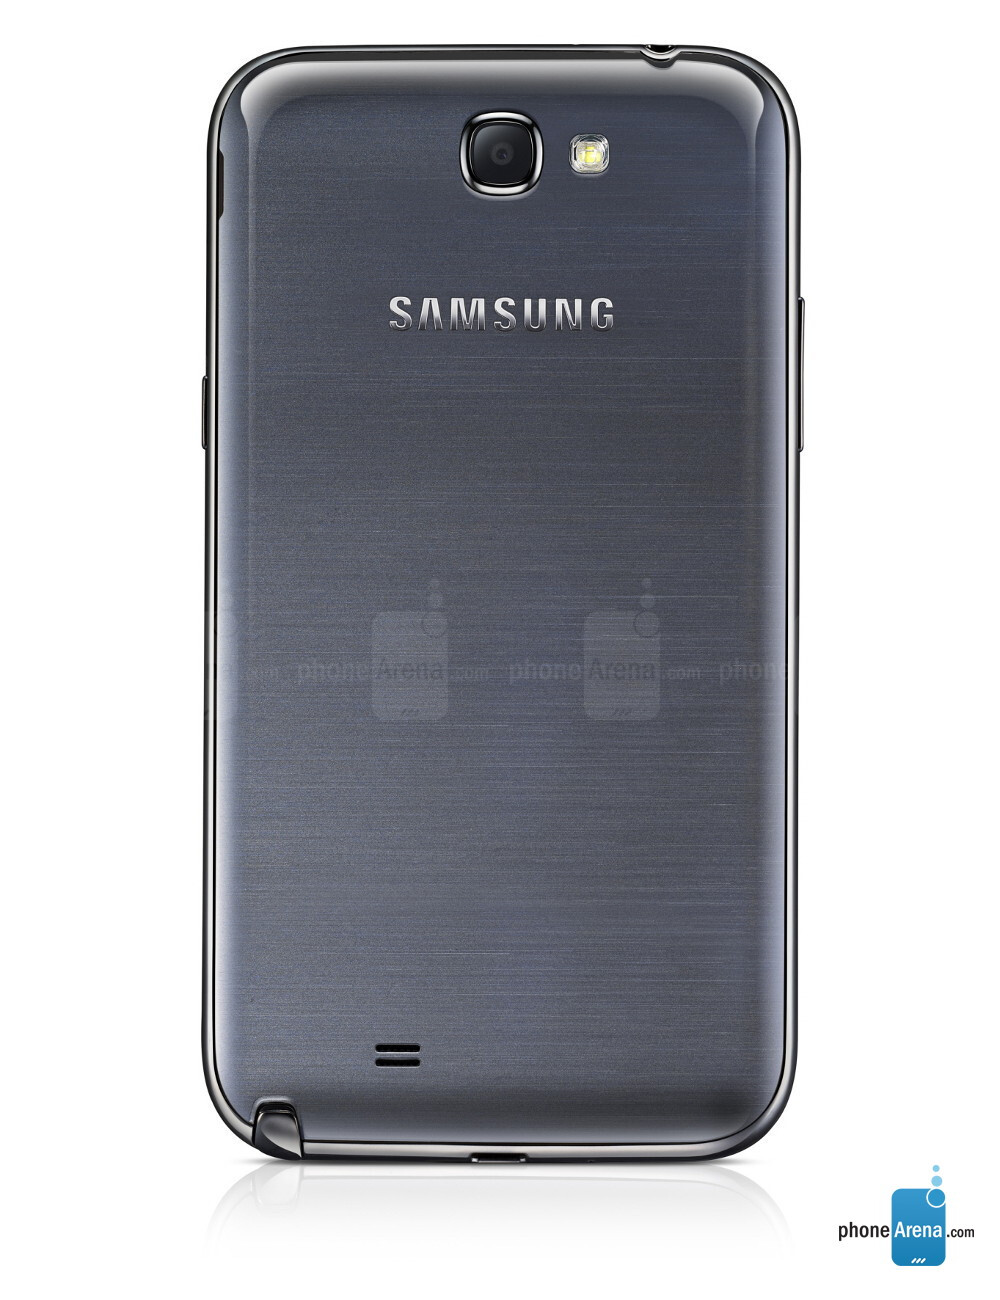 Samsung galaxy note ii verizon specs for Housse telephone samsung galaxy note 3